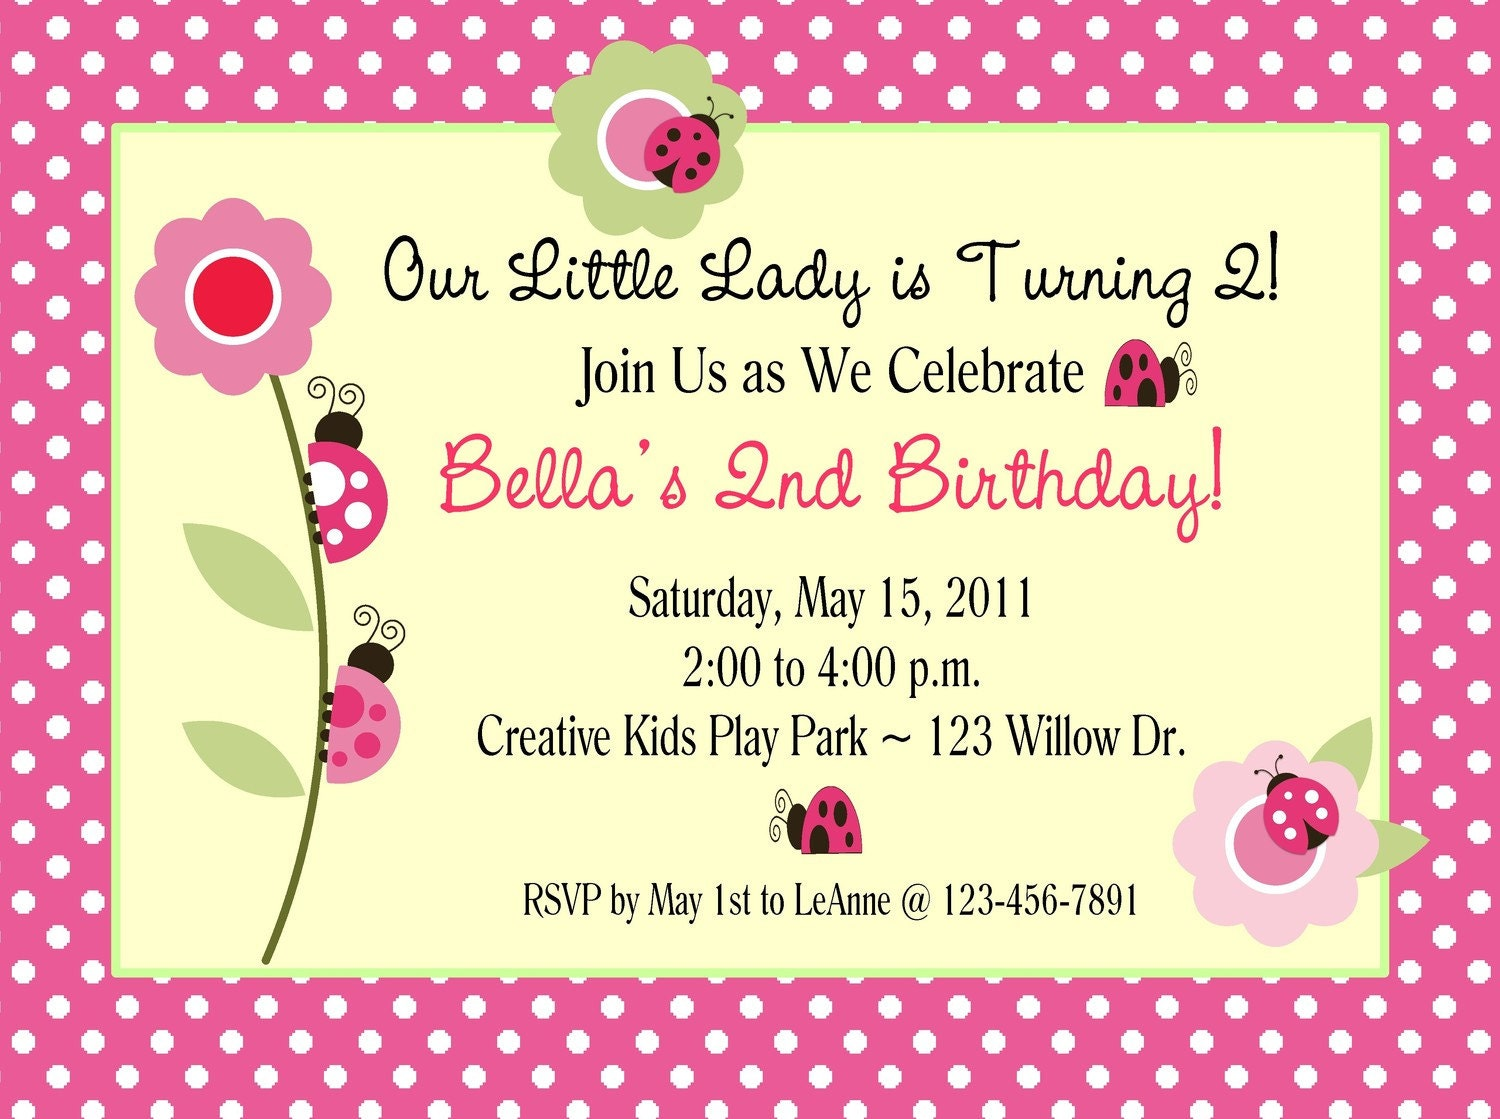 bday party invitation - Thebeerengine.co